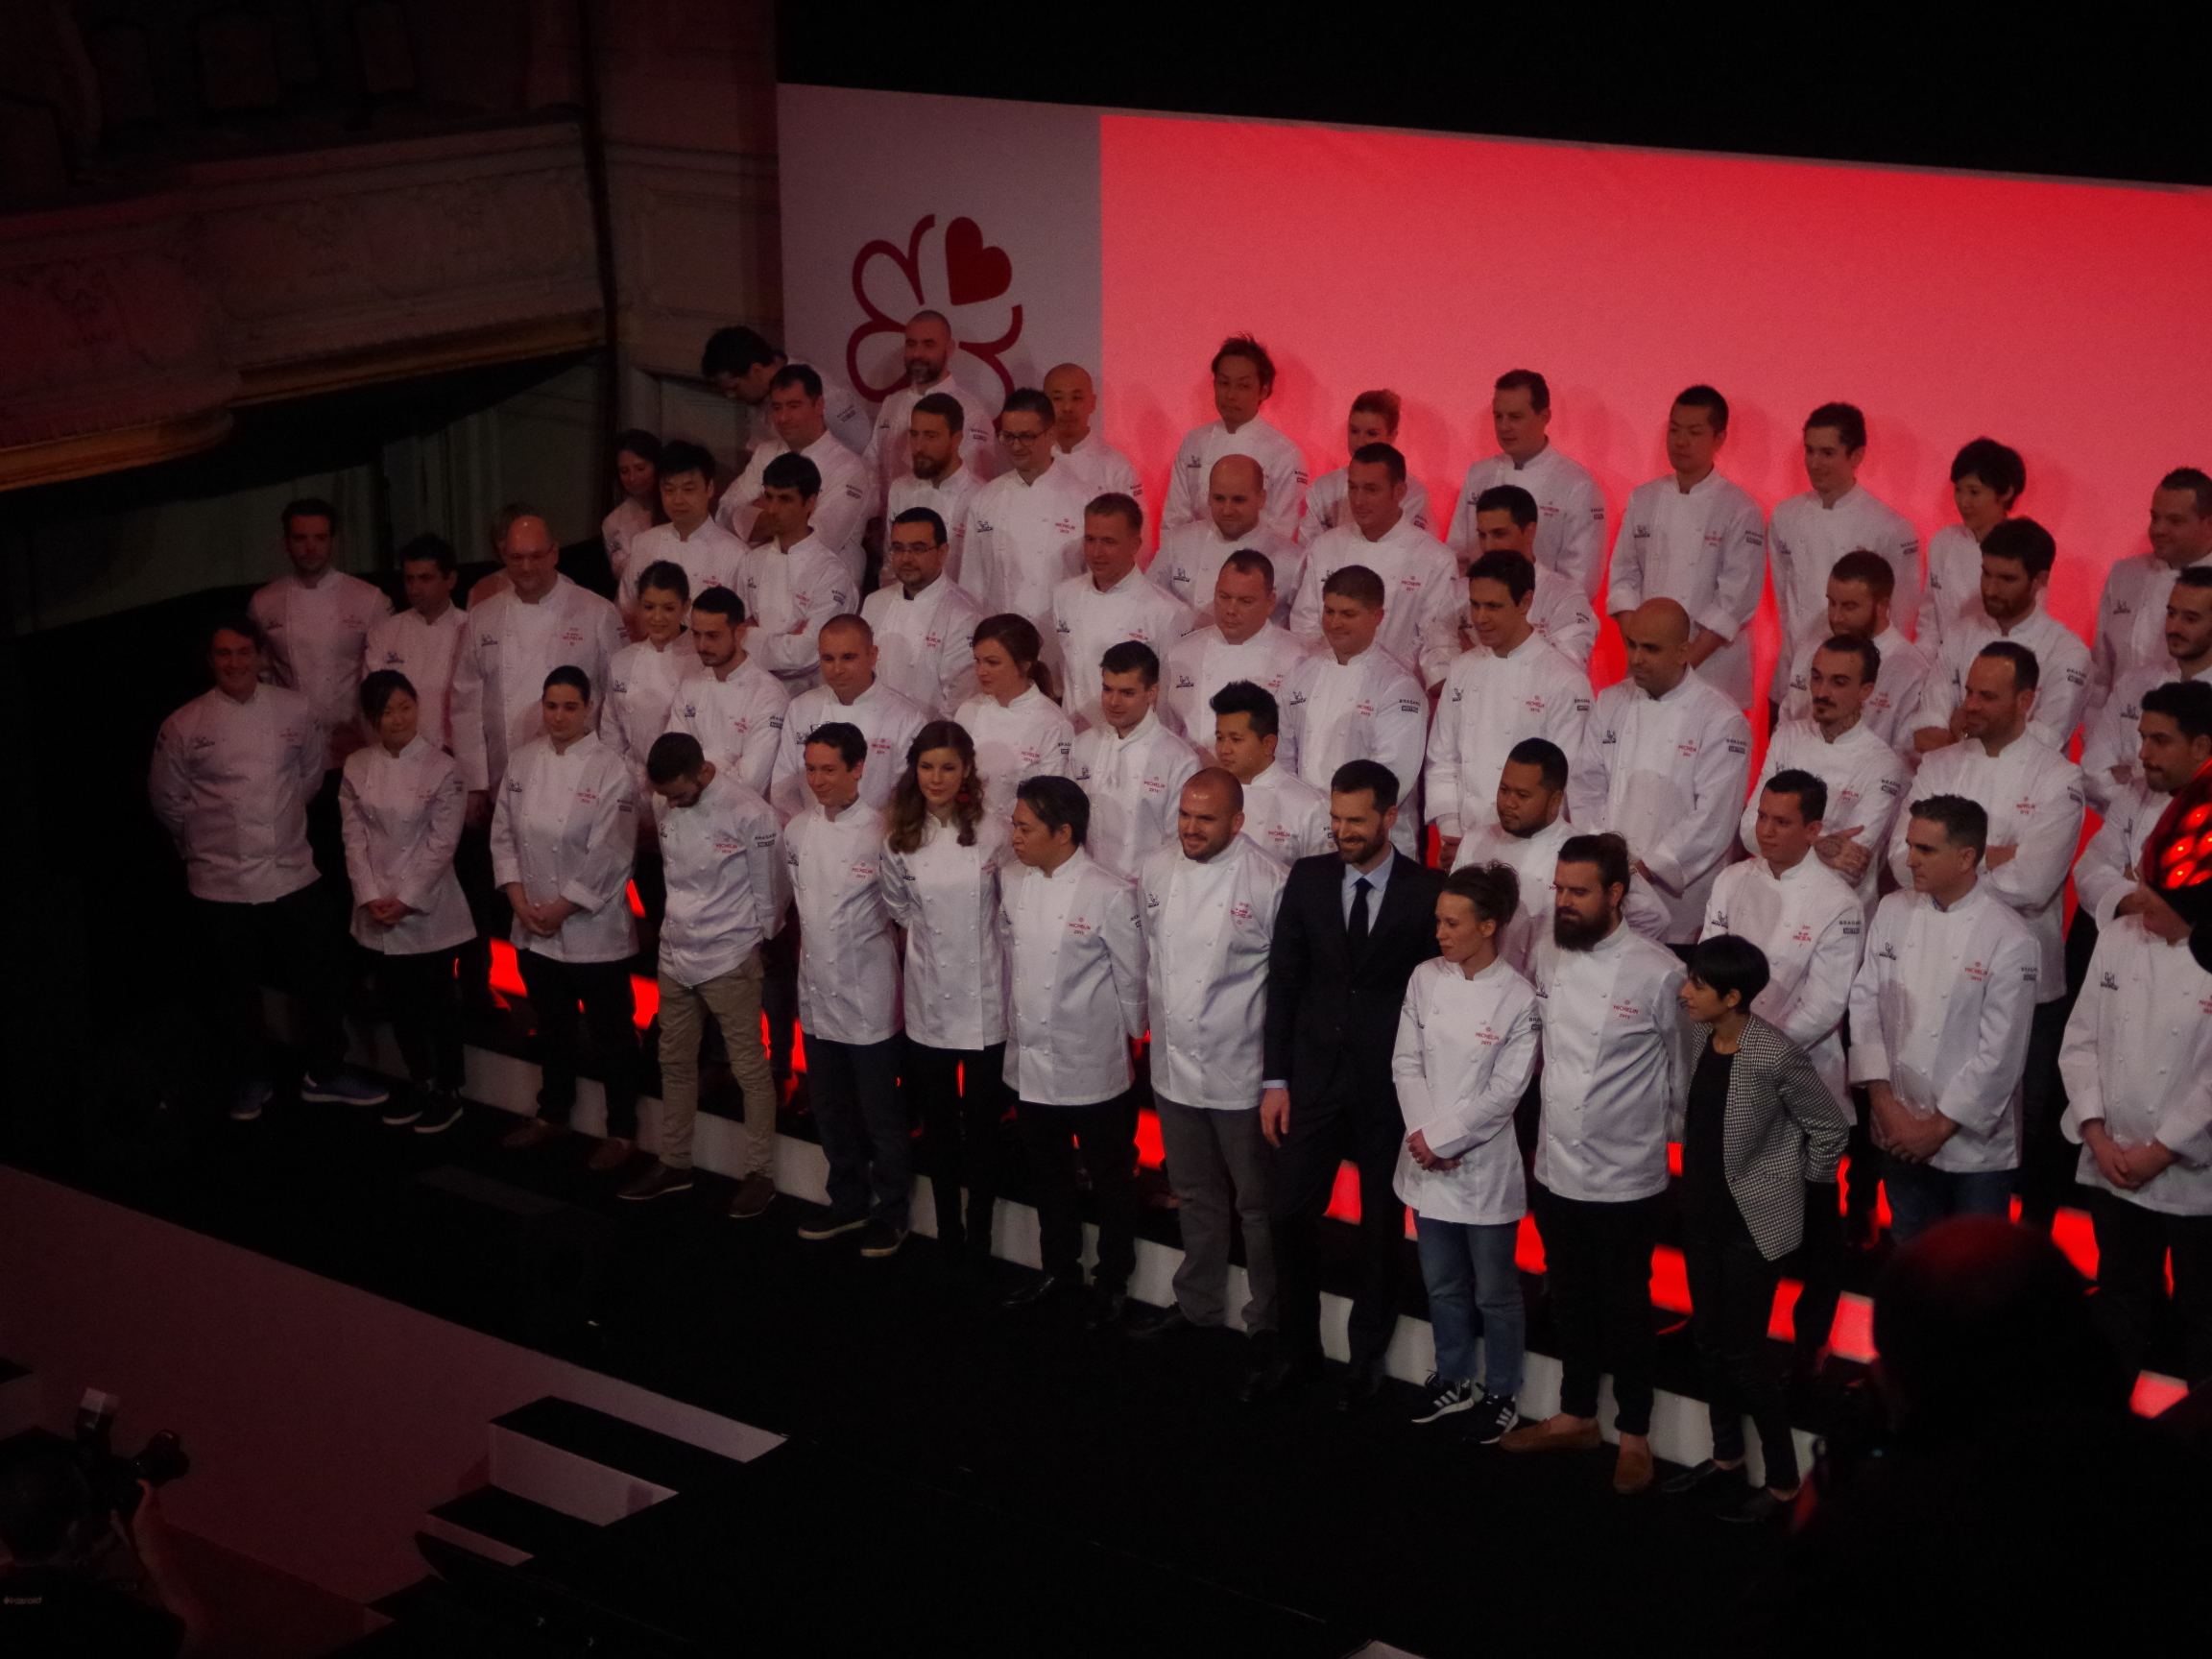 michelin 1 star chef 2019 ceremony winners paris.jpg